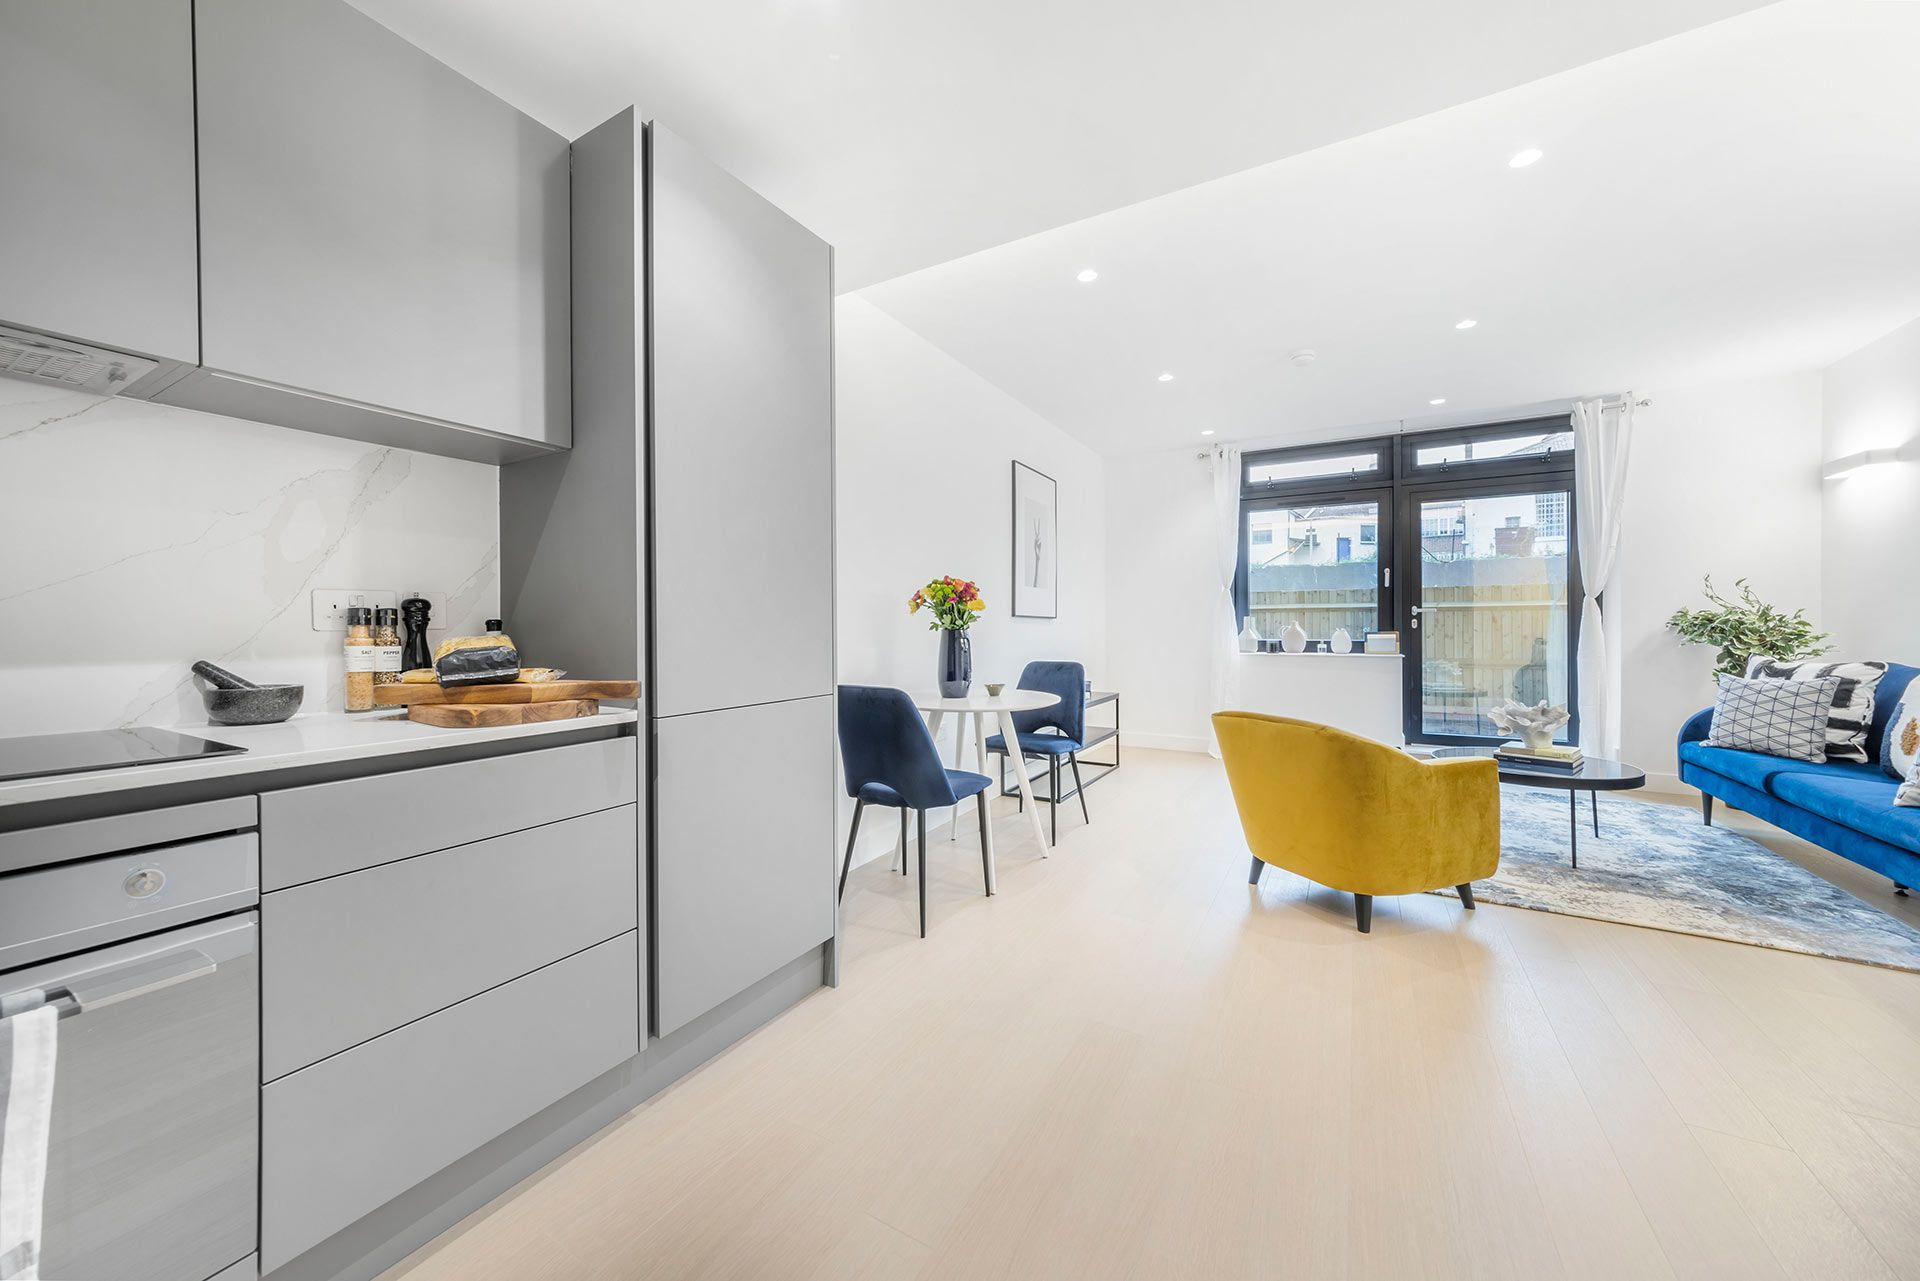 1 Bedroom apartment to rent in London SKI-VH-0021